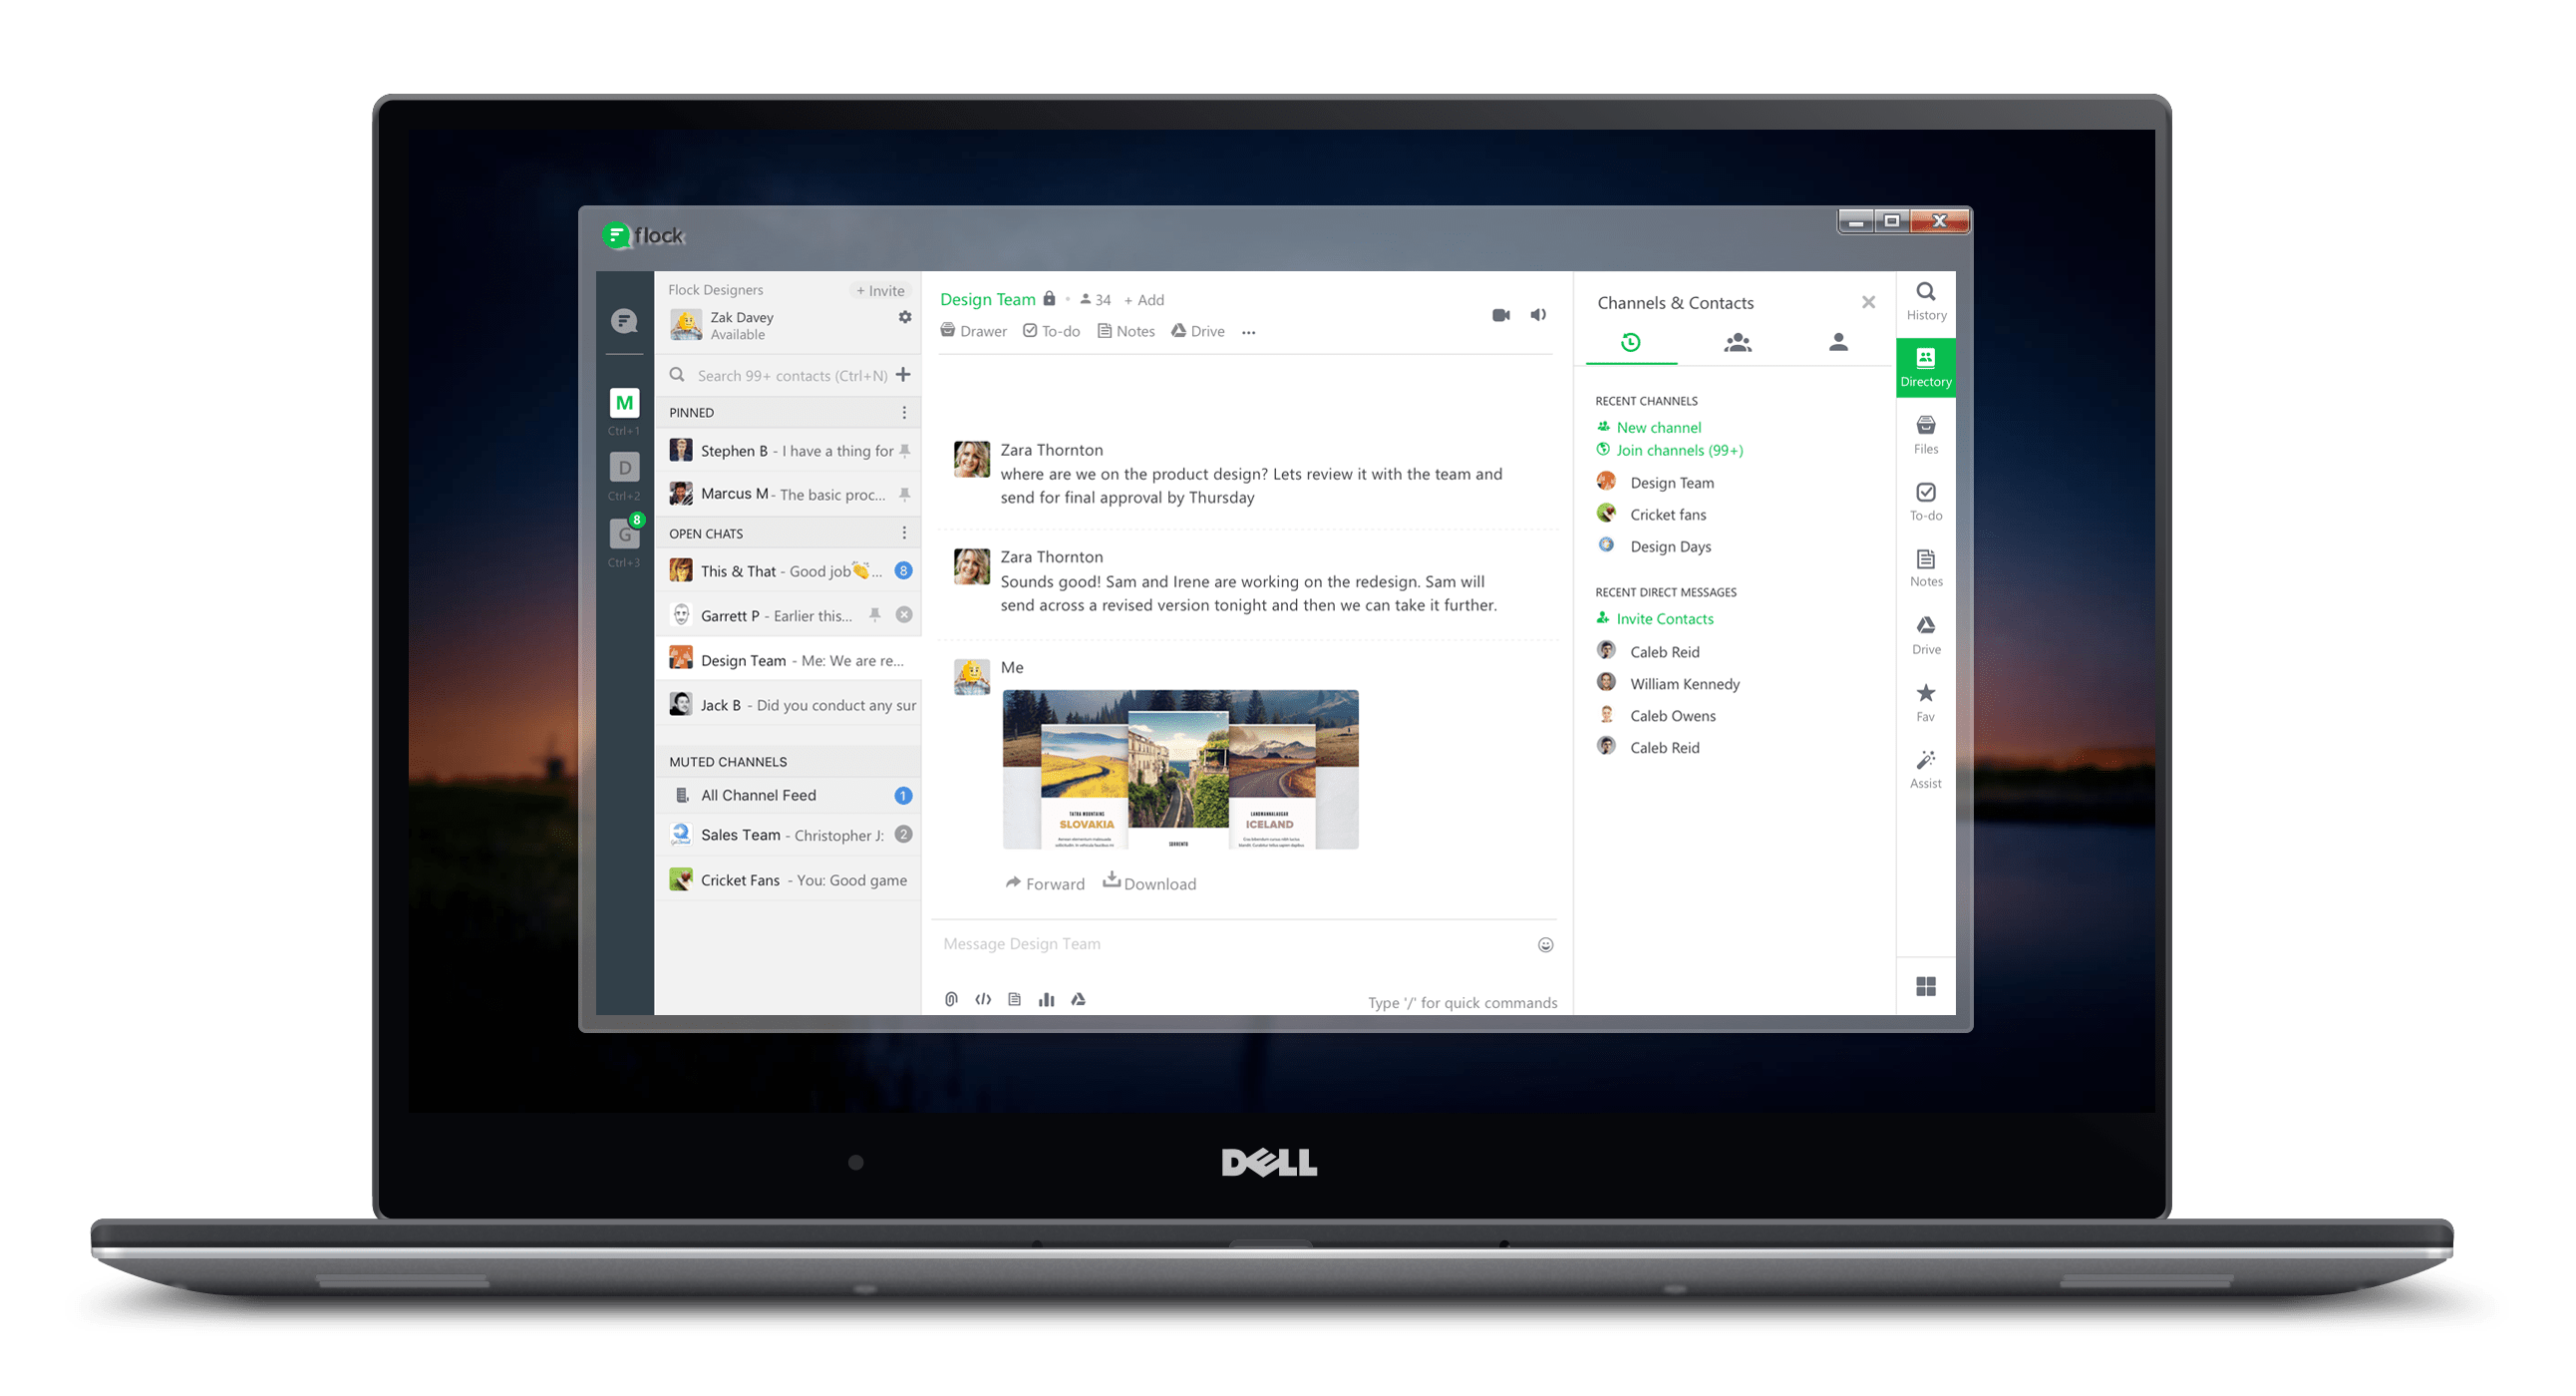 Download the best business teams communication app for windows